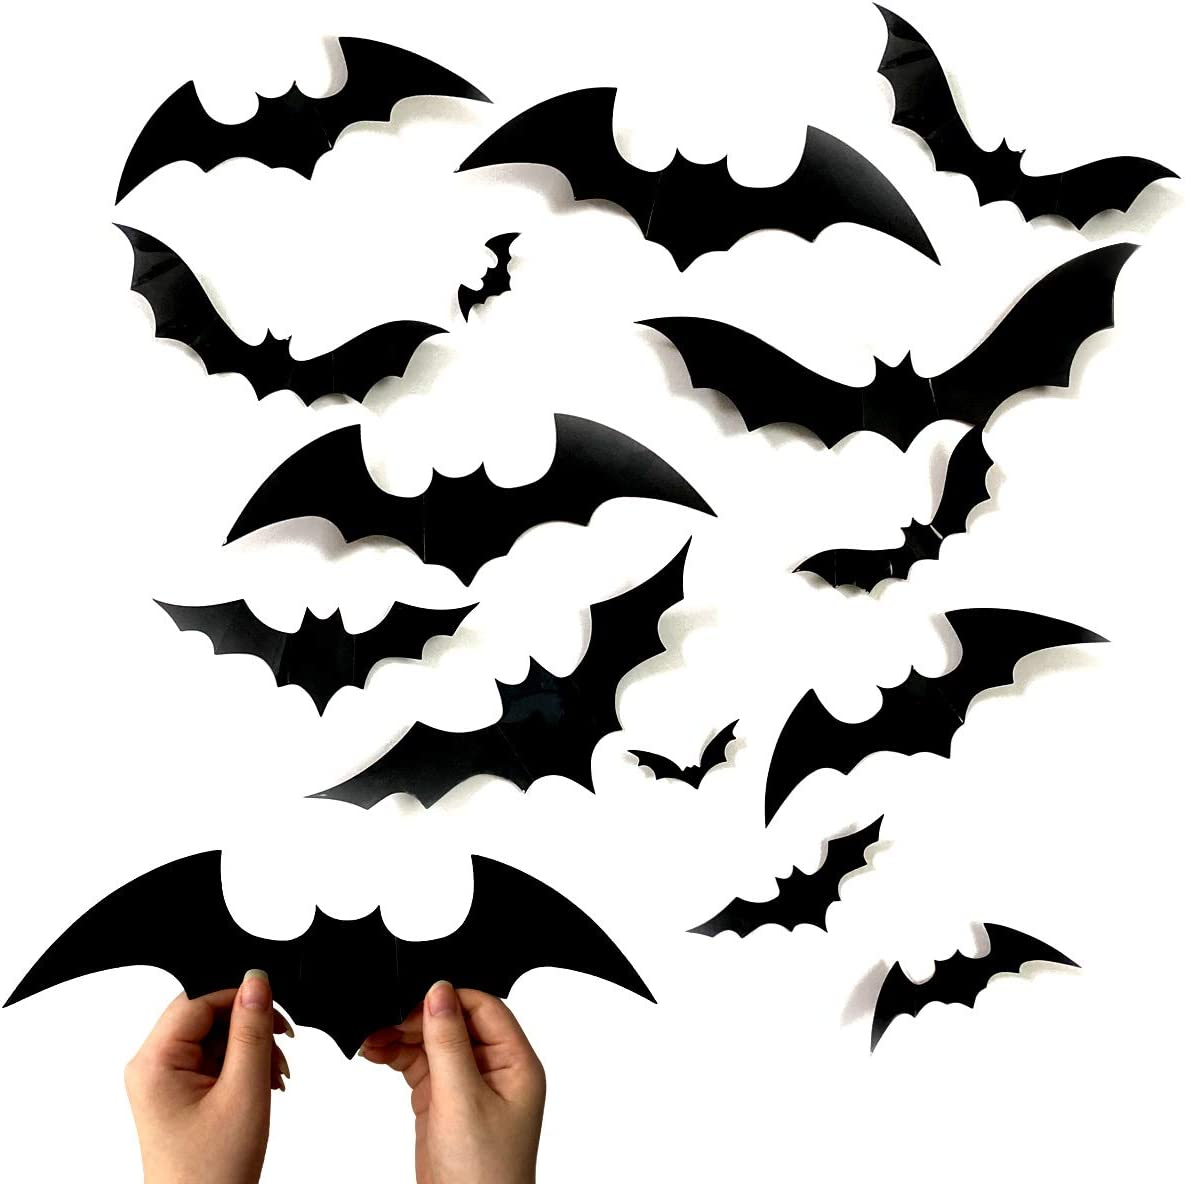 Anditoy 60 PCS Halloween 3D Bats 4 Sizes Scary Bats Wall Decal Stickers Window Clings for Halloween Decorations Outdoor Indoor Halloween Party Supplies